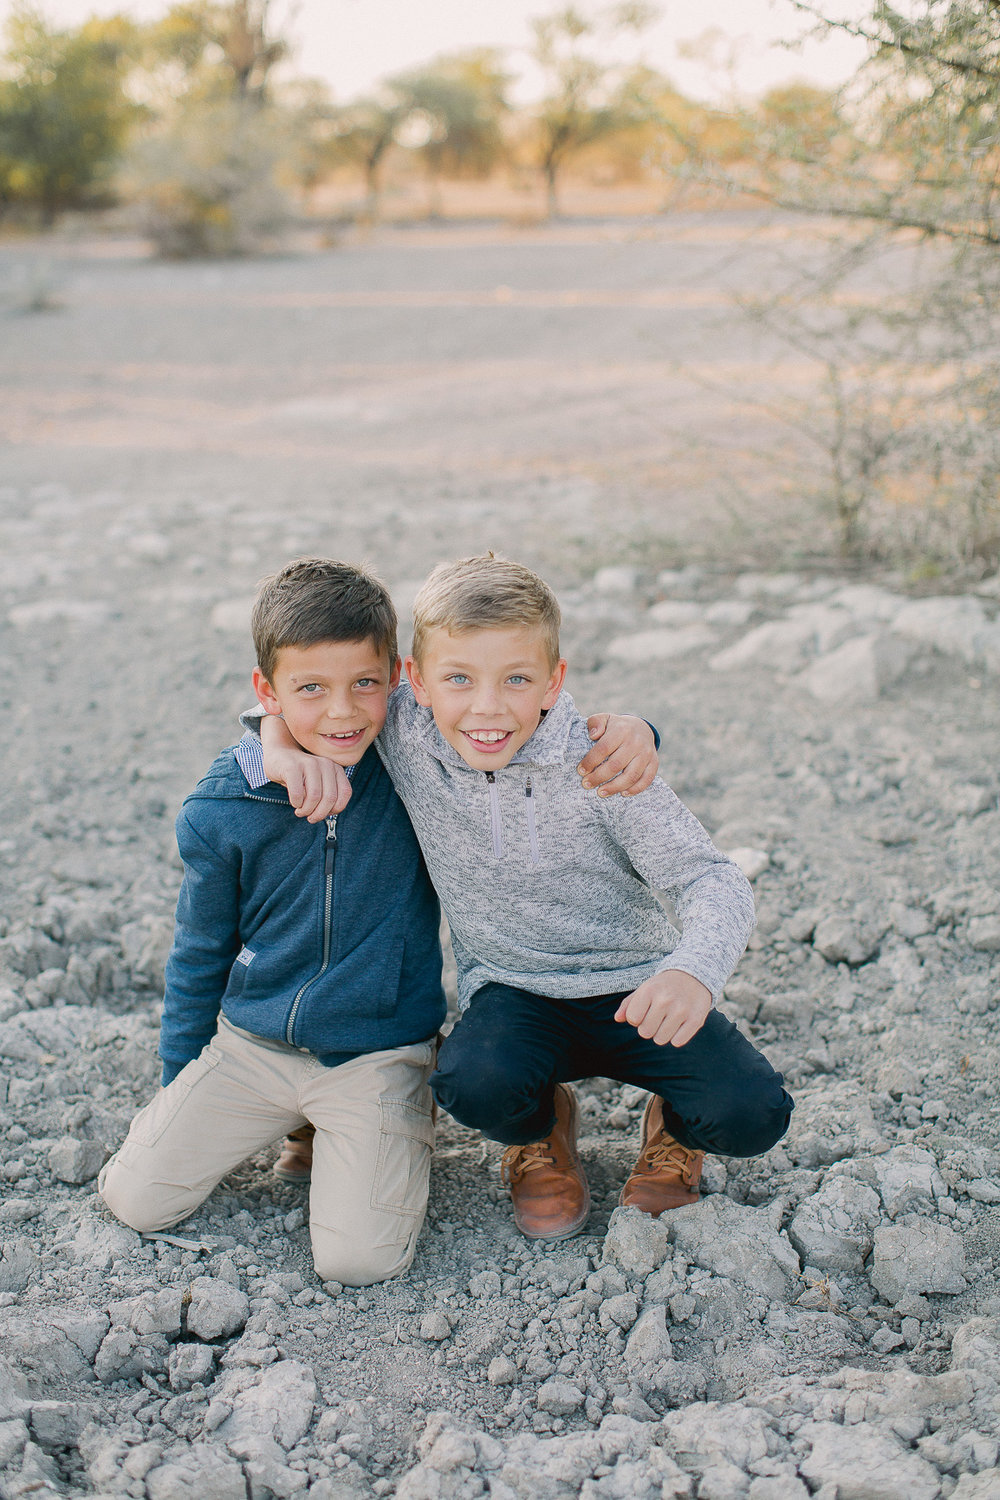 clareece smit photography family session012.jpg